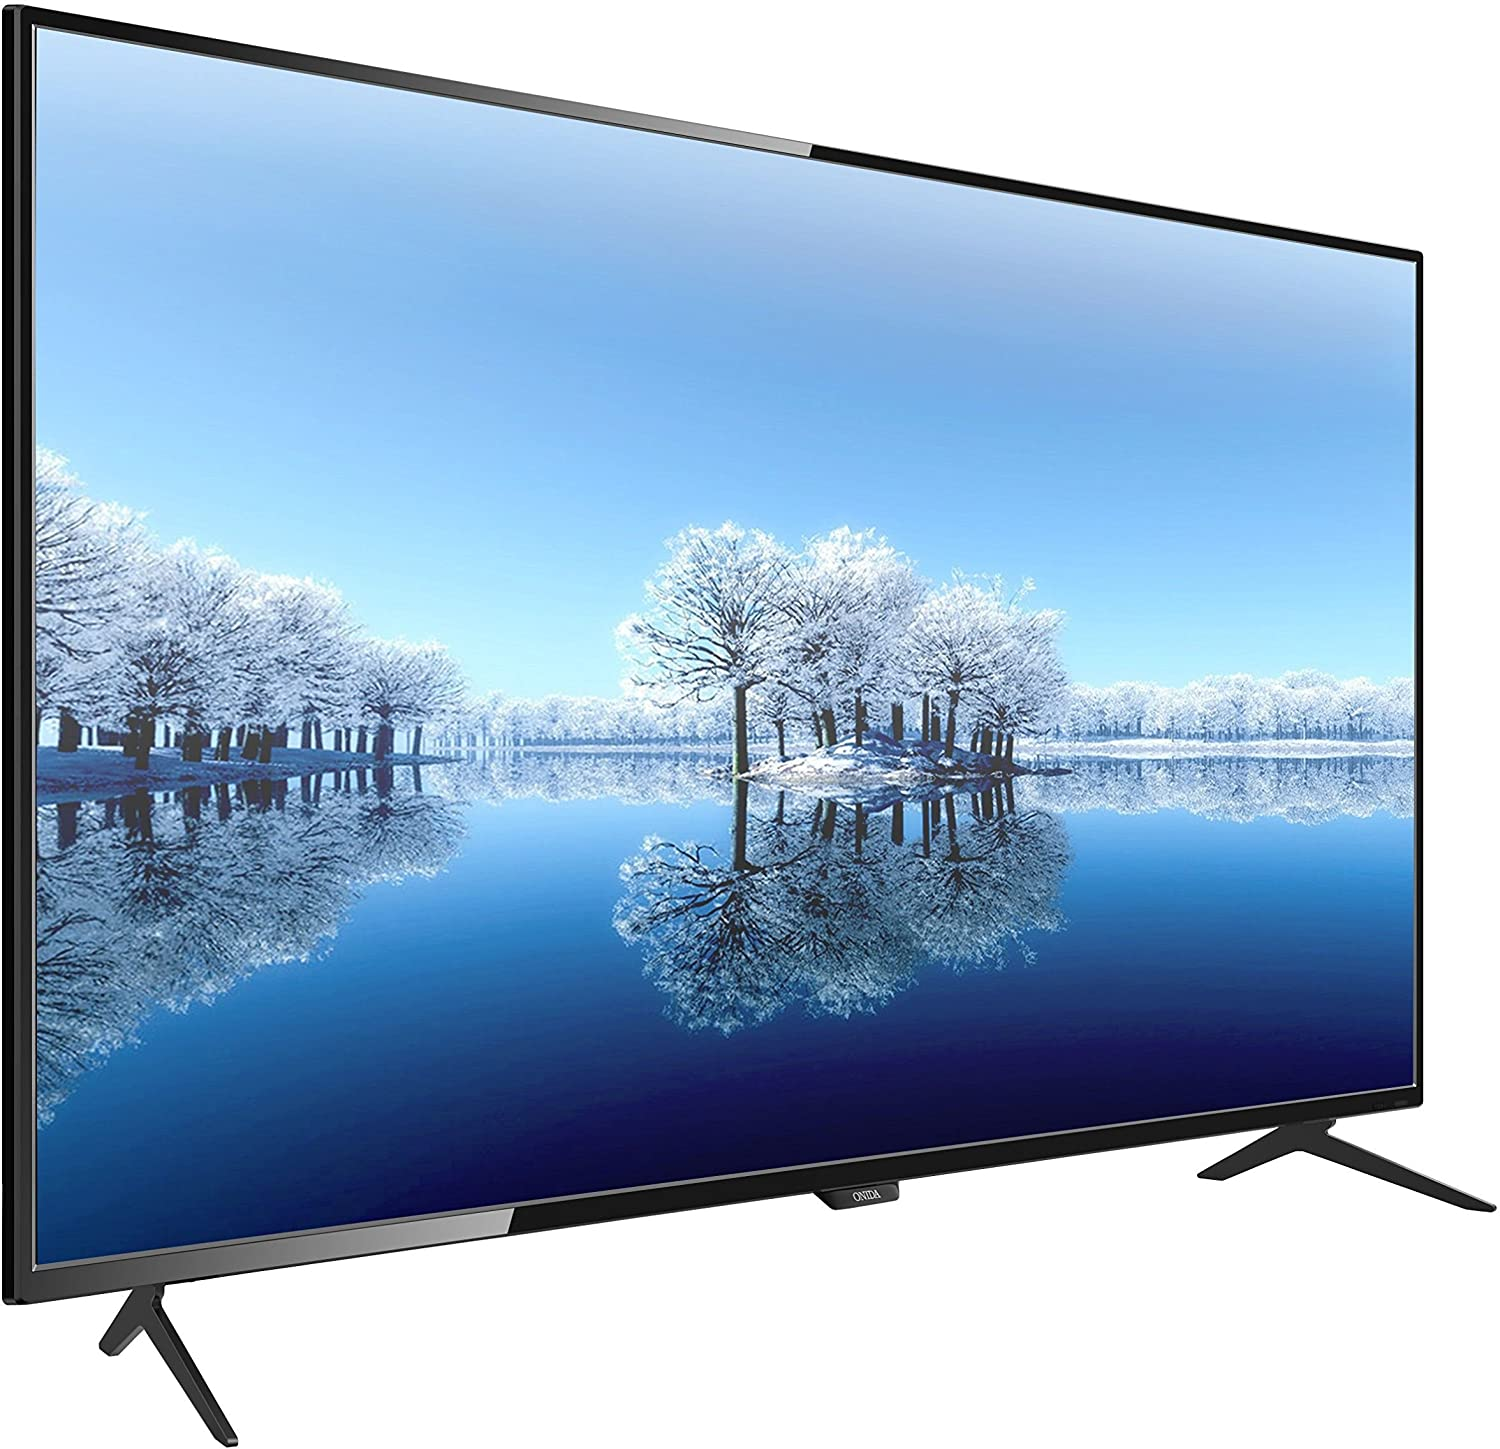 Best 55 inch 4K TVs in India under 60,000 - reviewed and rated